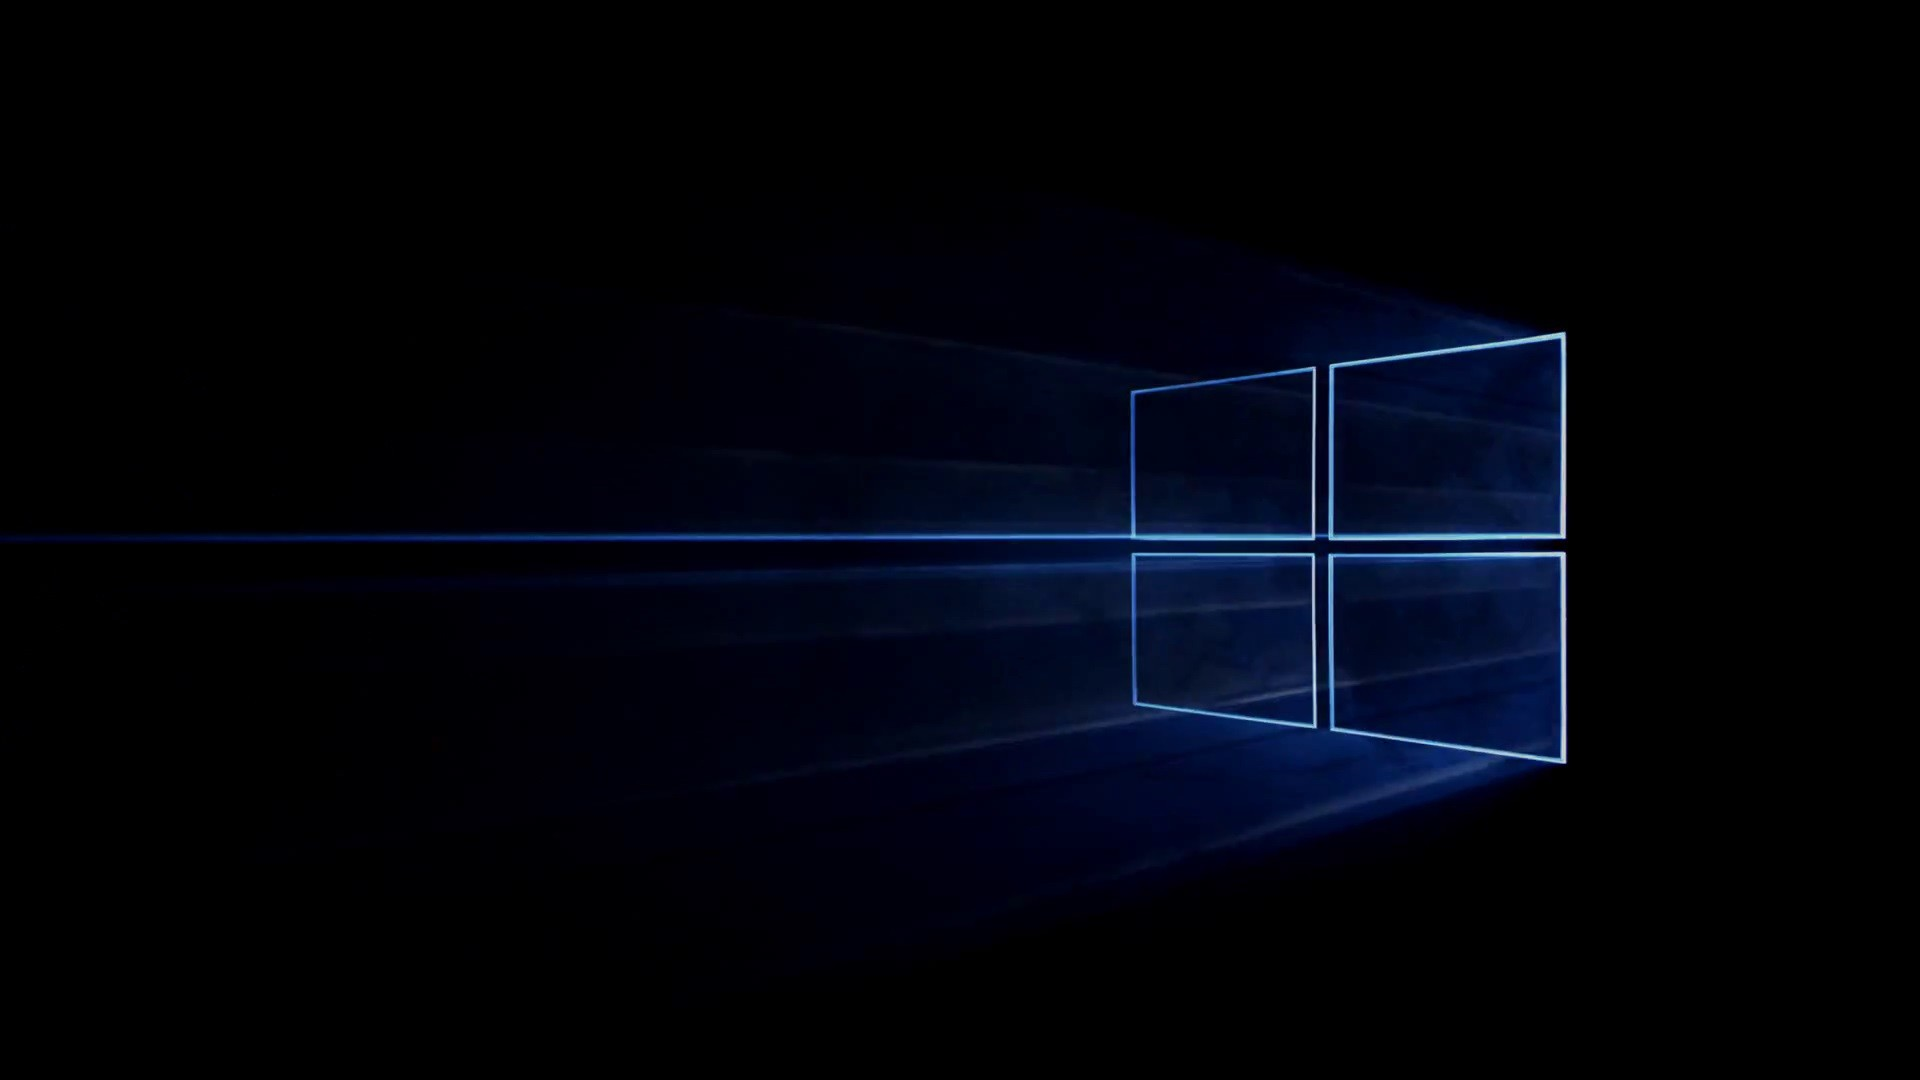 The hero wallpaper that will be included in Windows 10 RTM 1920x1080